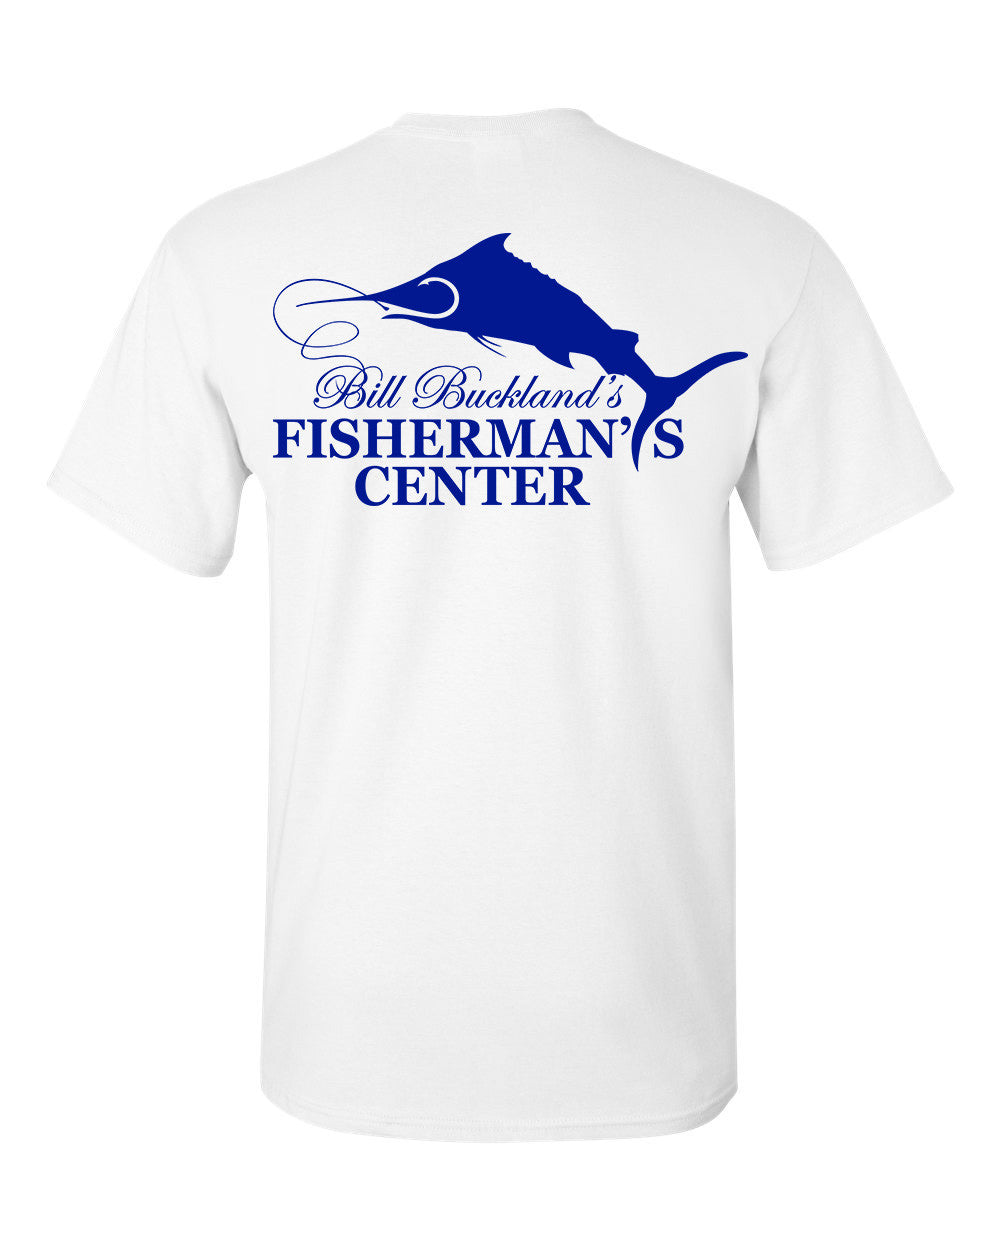 The Fisherman's Center Original Short Sleeve T-Shirt